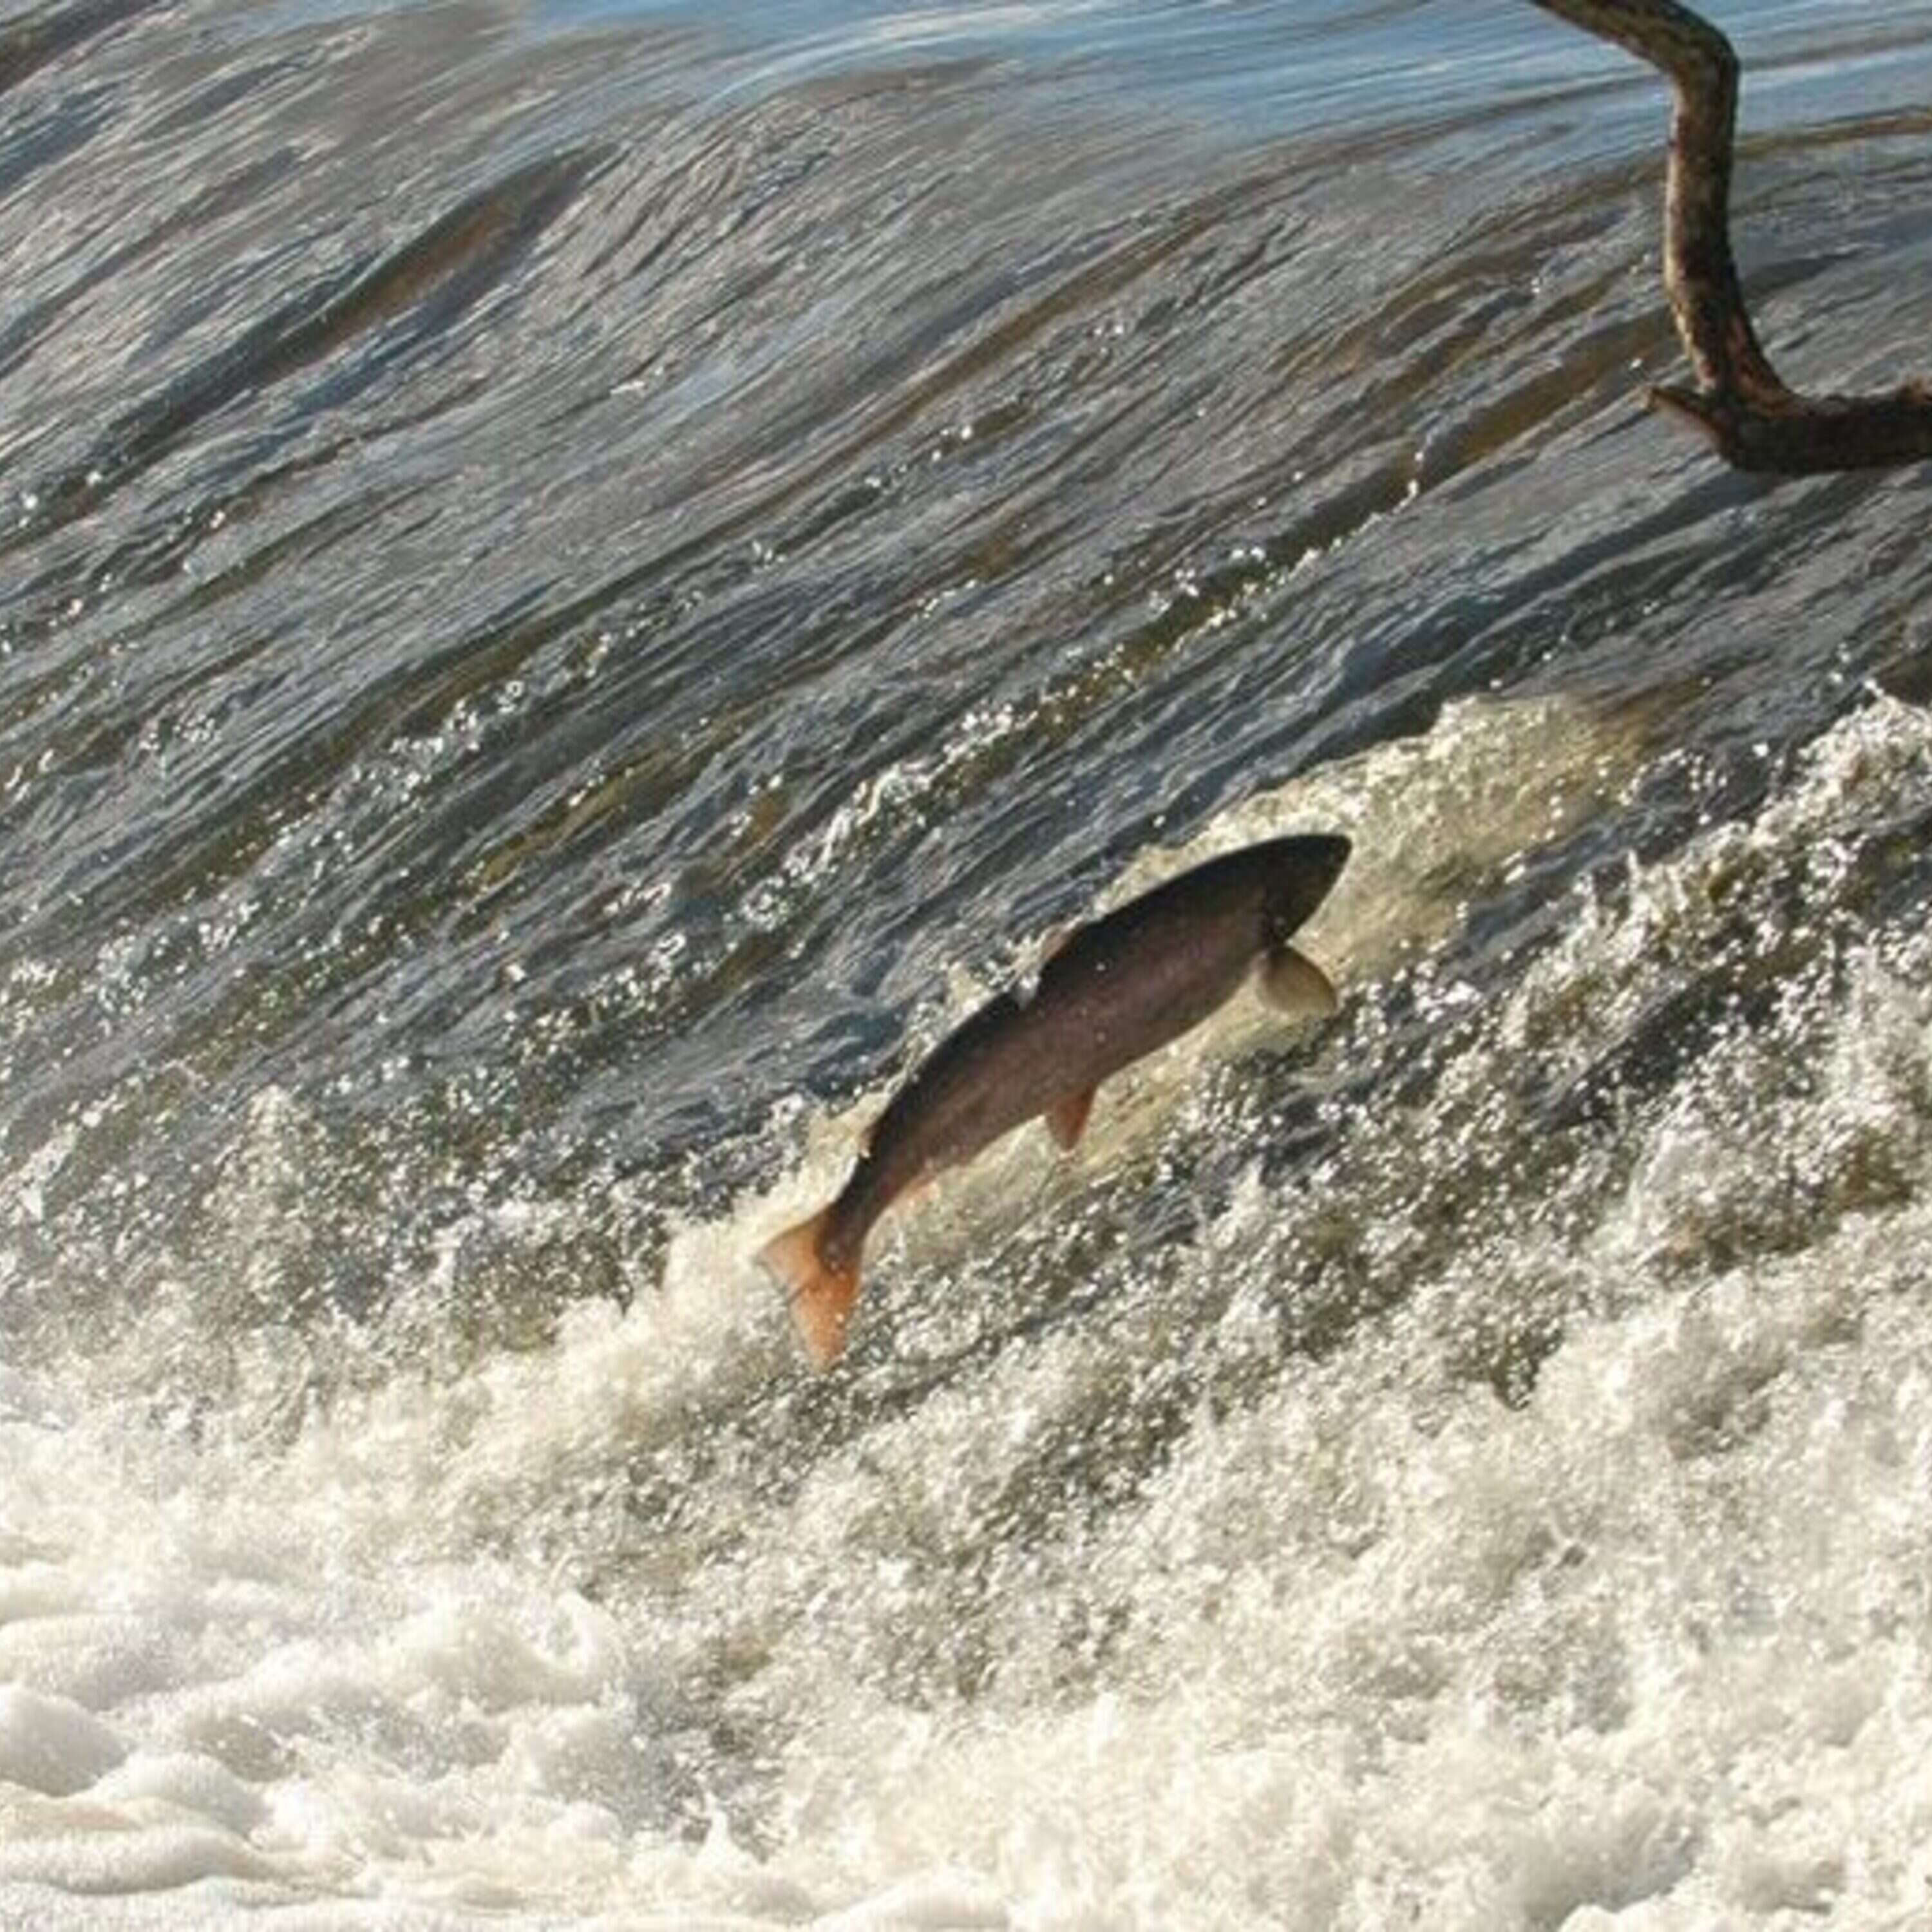 Make Way for the Salmon - the documentary series on the River Nore salmon